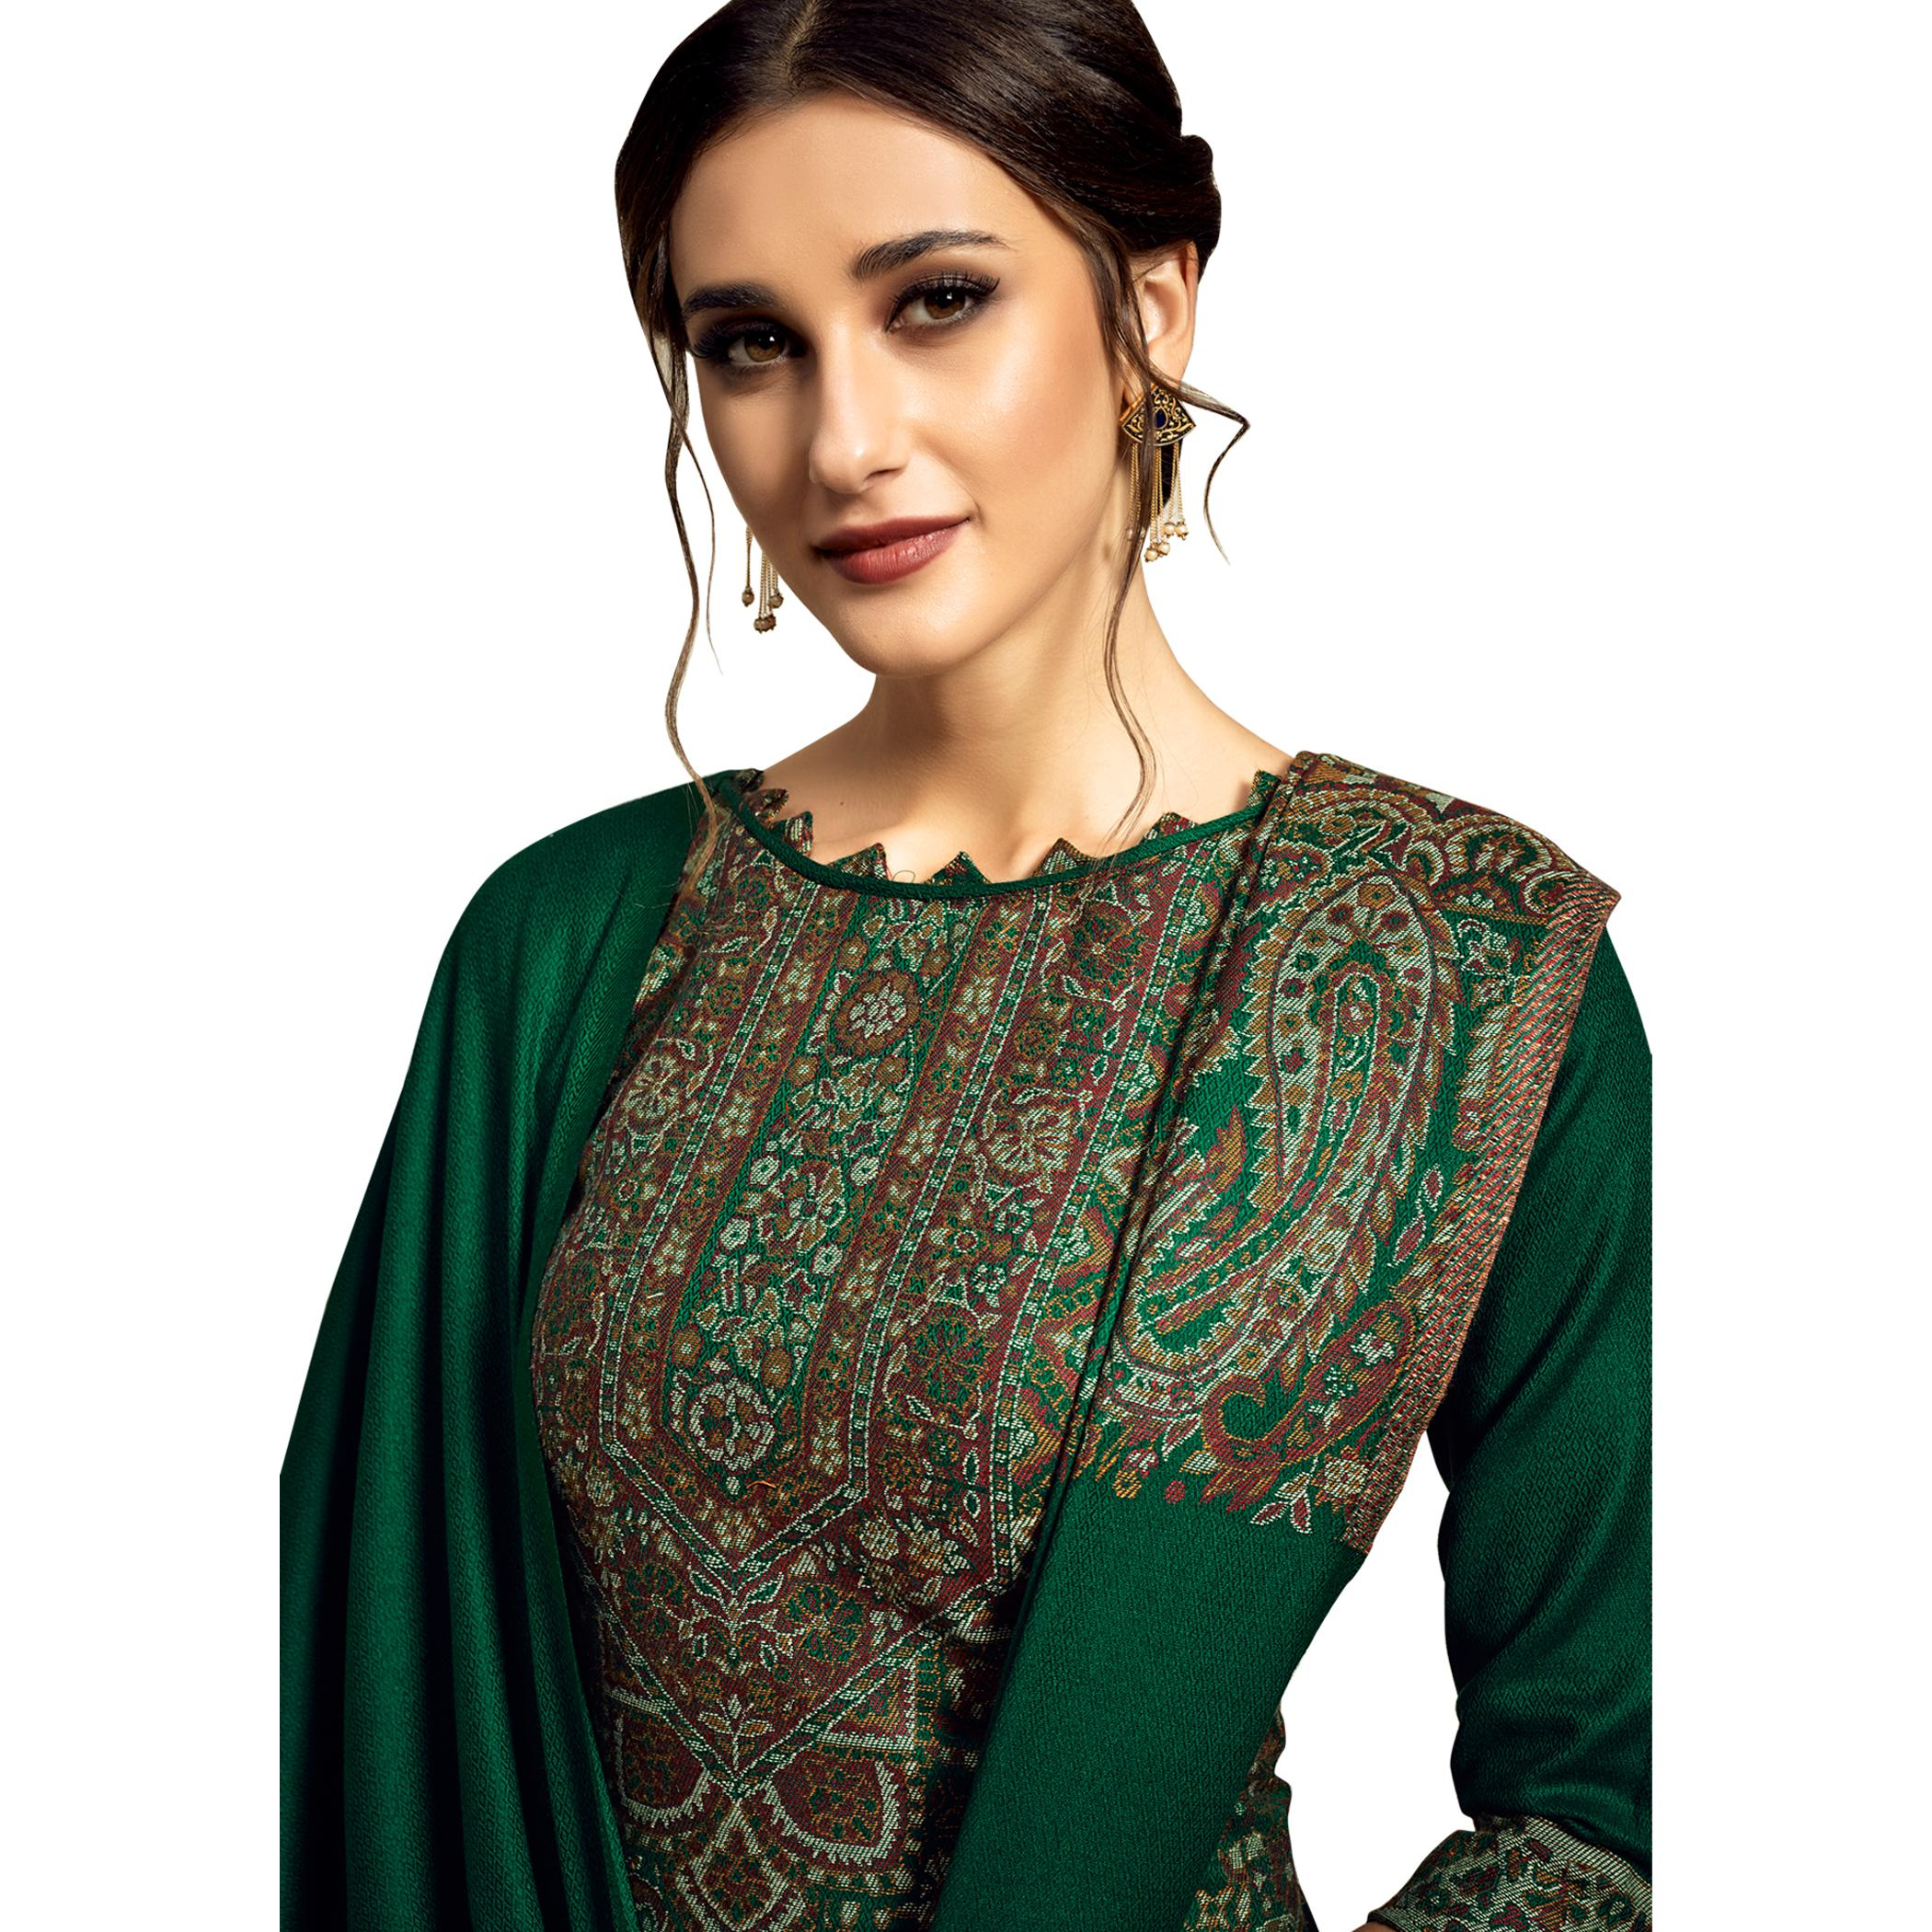 Safaa - Green Colored Party Wear Printed Rayon Acro Wool Dress Material